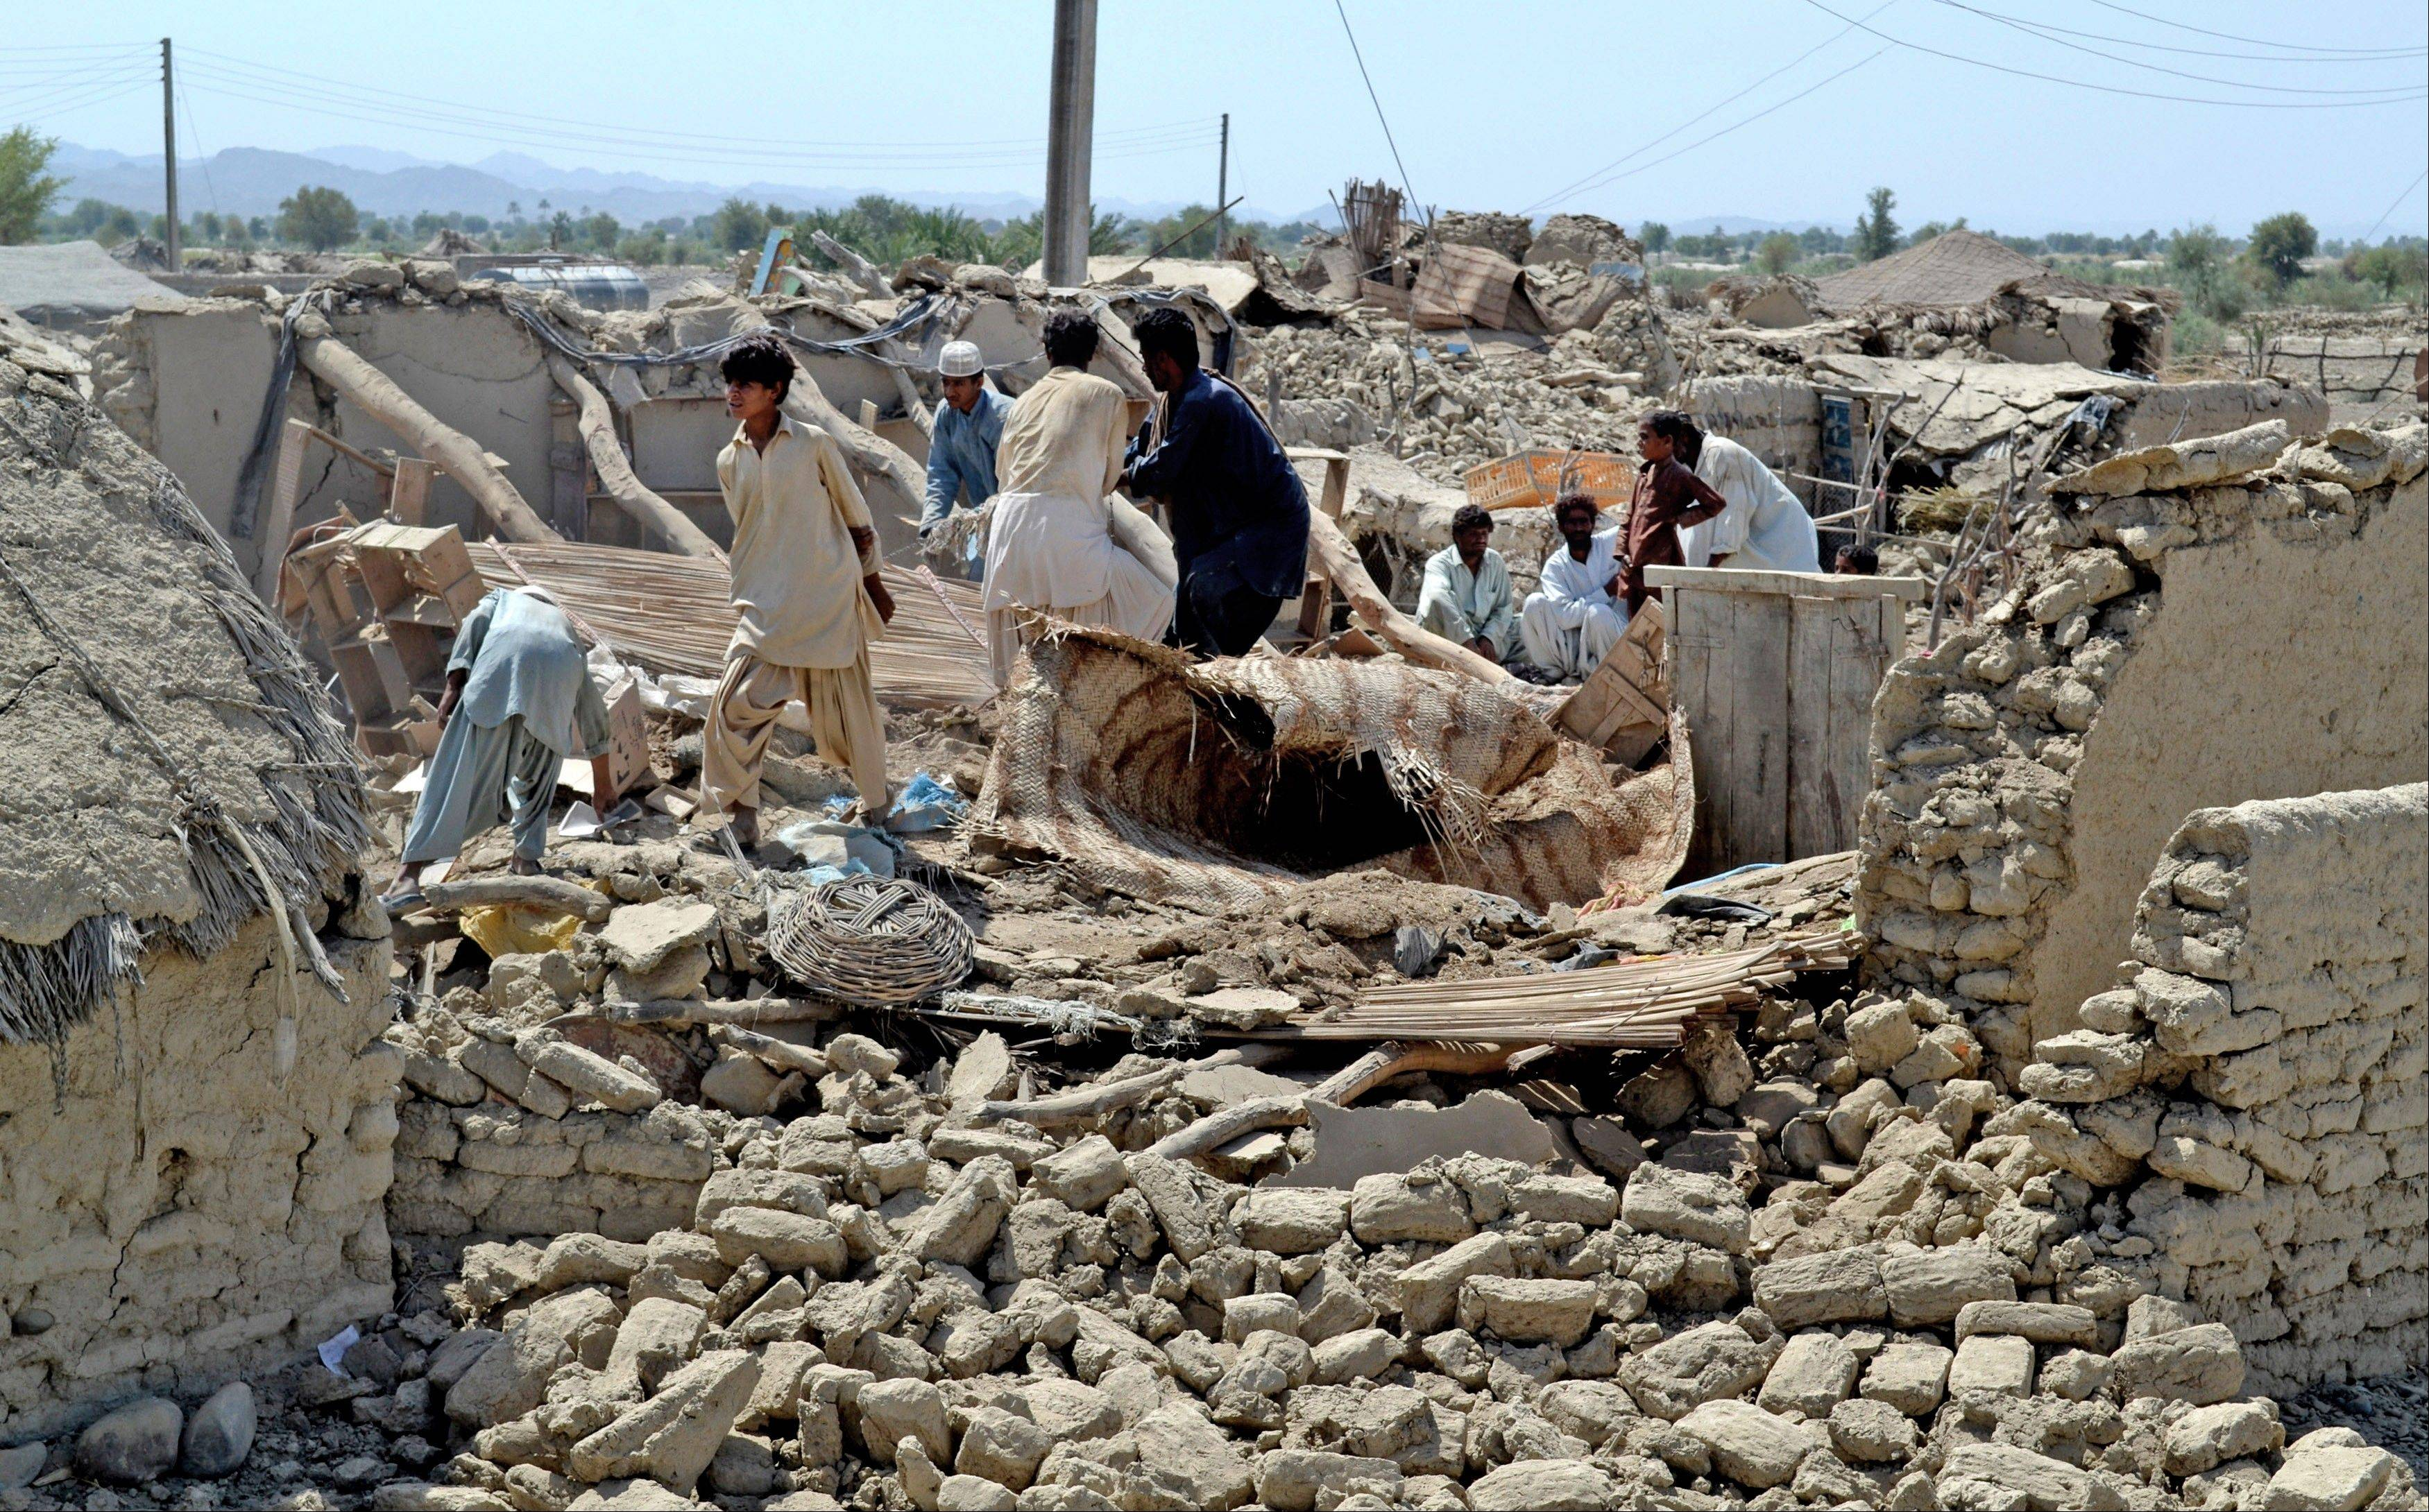 Pakistani villagers look for belongings amid the rubble of their destroyed homes following an earthquake in the remote district of Awaran, Baluchistan province, Pakistan, Wednesday, Sept. 25, 2013.